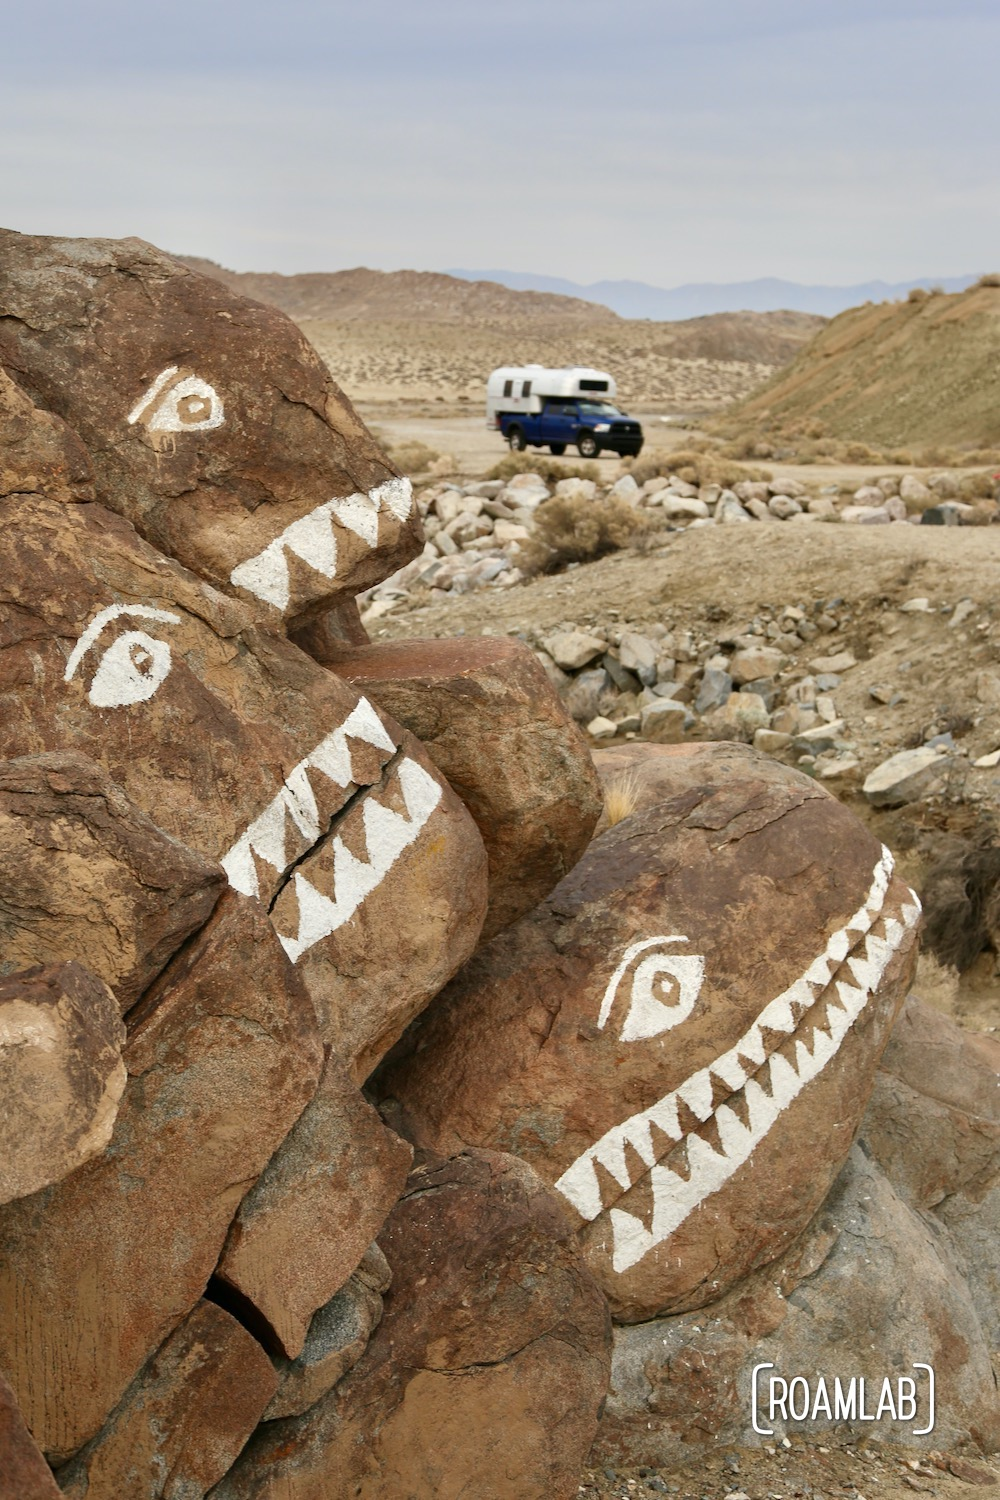 Graffiti or art in the California Desert